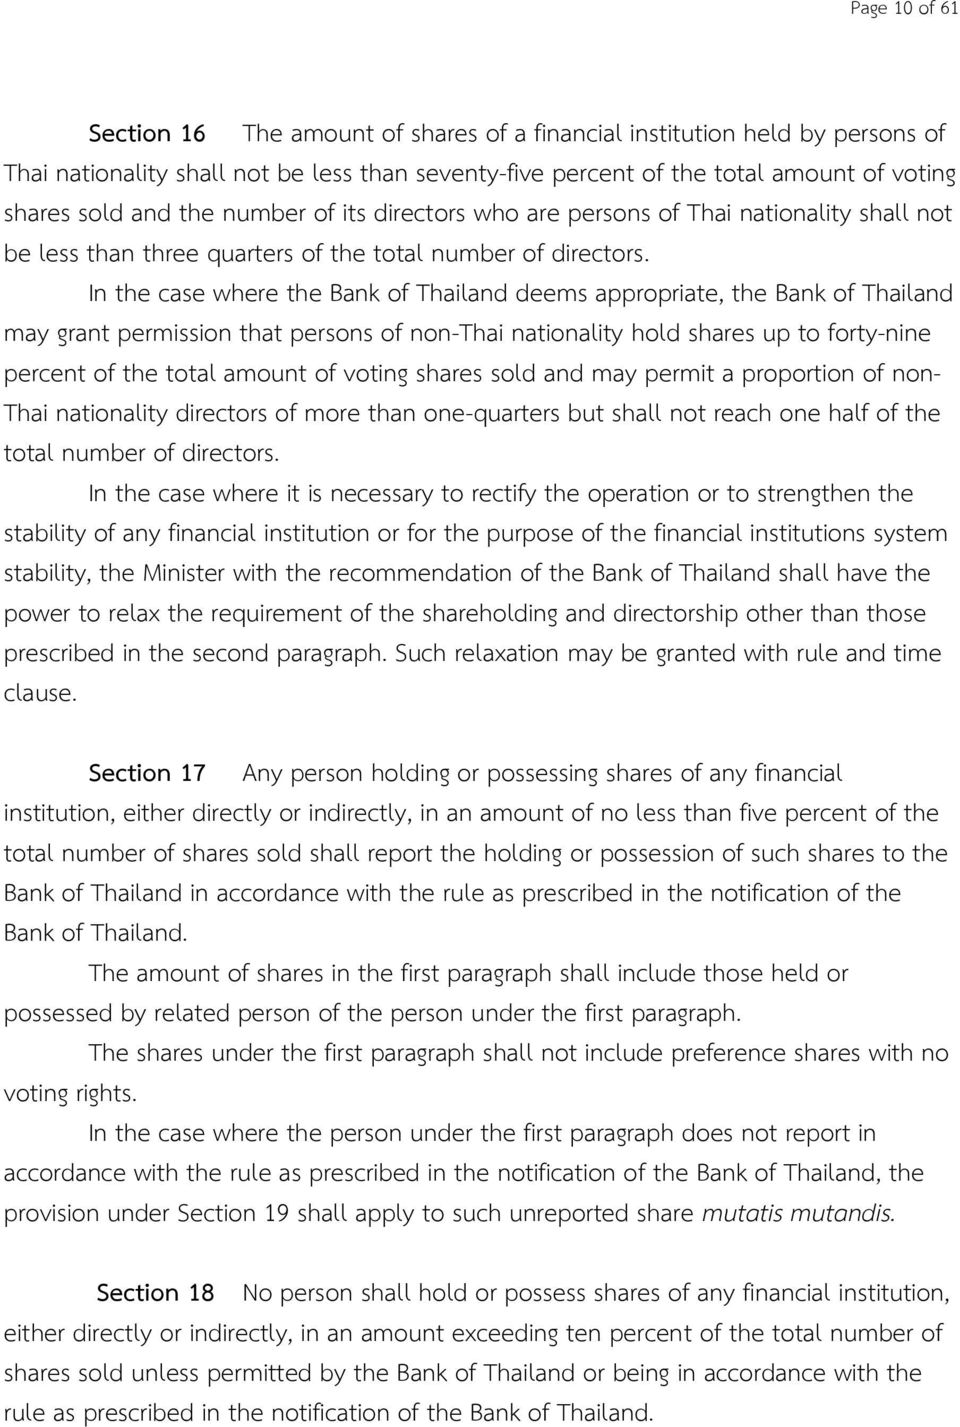 In the case where the Bank of Thailand deems appropriate, the Bank of Thailand may grant permission that persons of non-thai nationality hold shares up to forty-nine percent of the total amount of